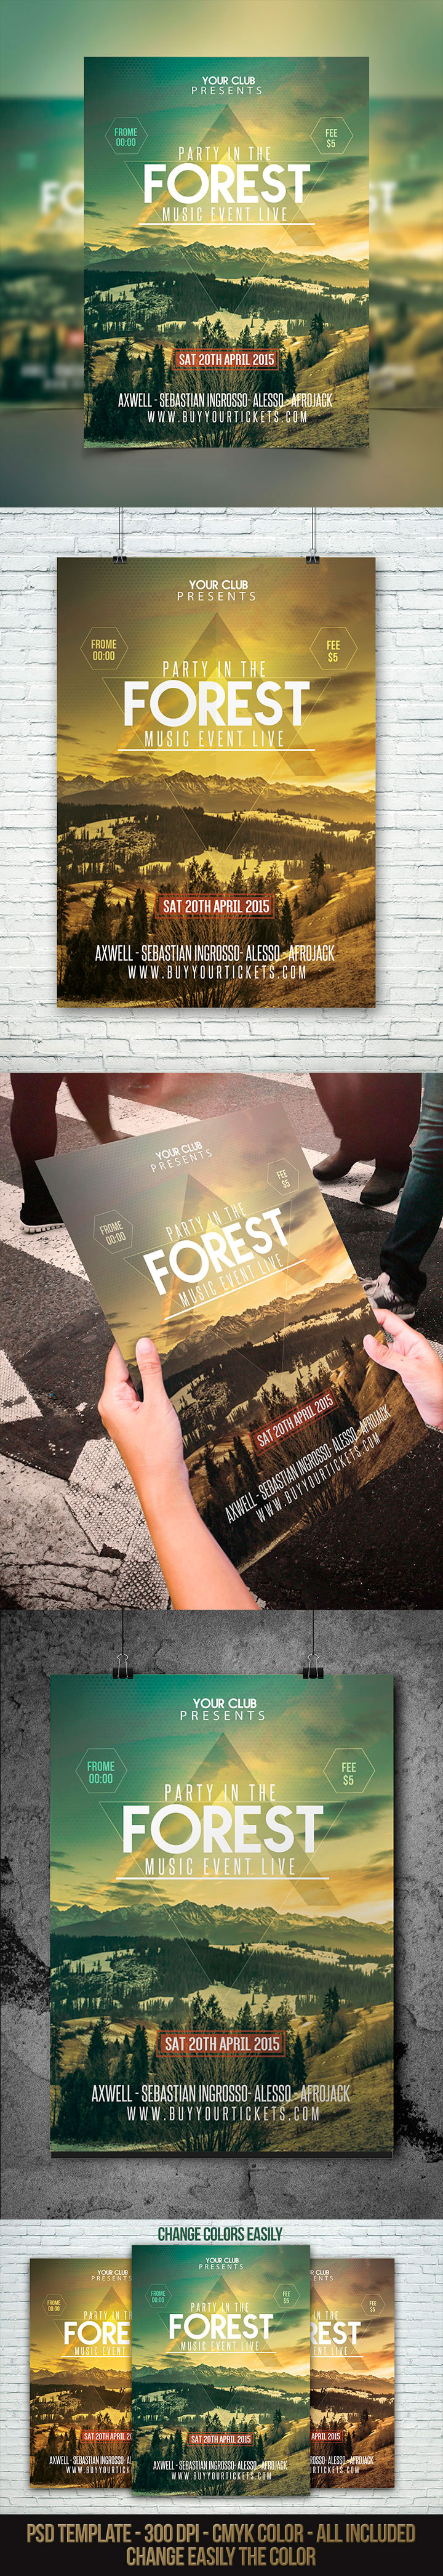 Forest-Party-Festival-Flyer-PSD-Template